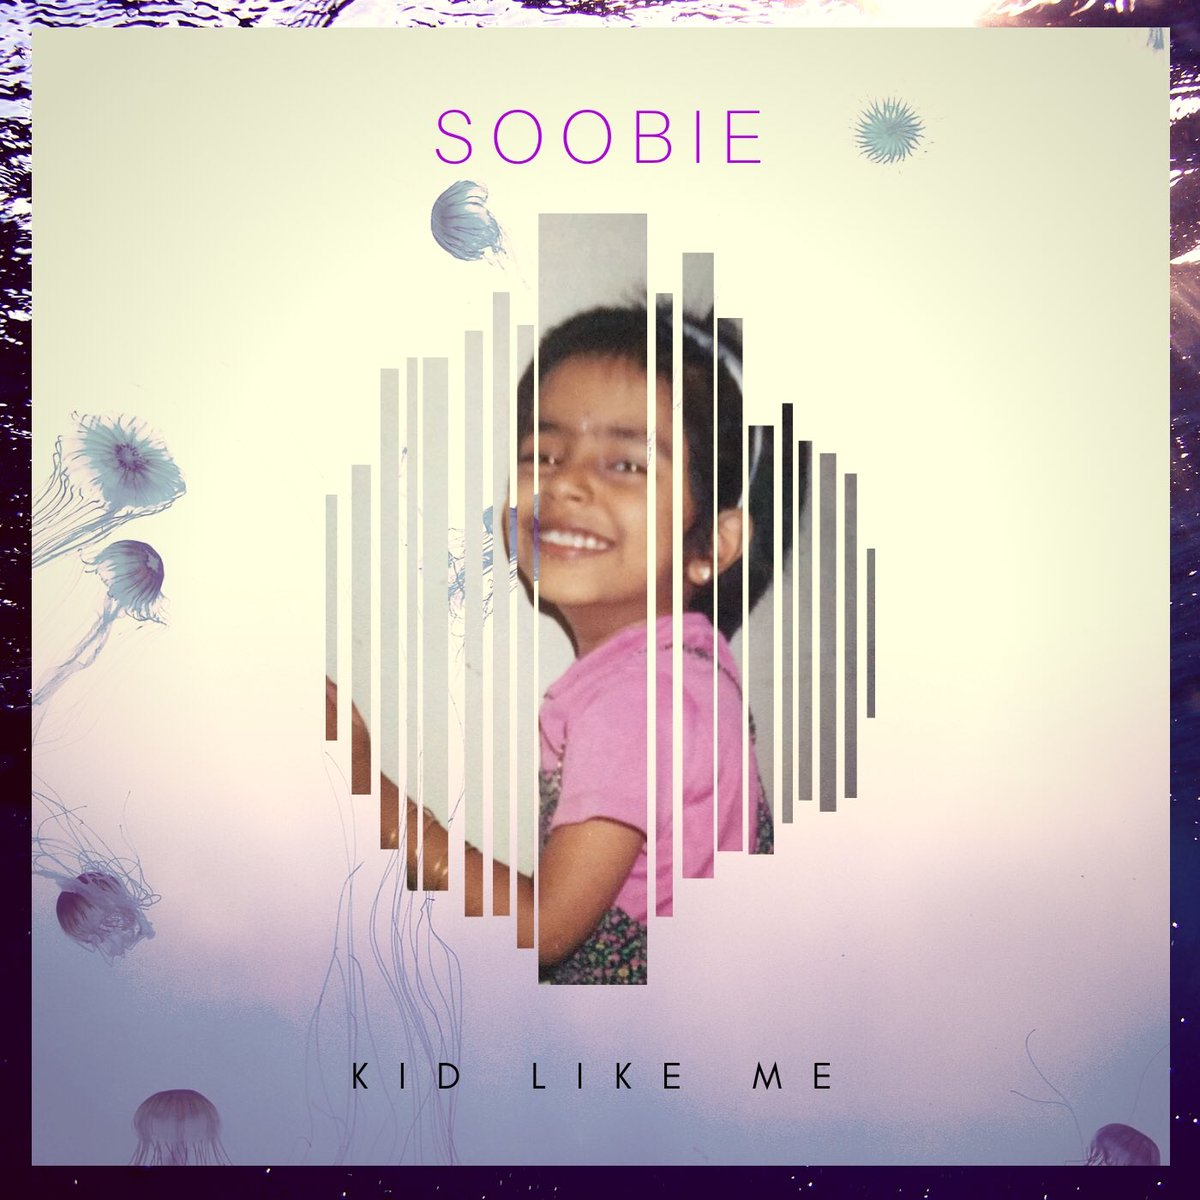 Happy, happy New Year! Let 2020 be the start of something new, whether it's getting hired, promoted, getting fit or maybe even putting a part of yourself out there like me.  My debut EP 'Kid Like Me' will be out for release on Jan 24, 2020 and you can pre-save it now on Spotify.